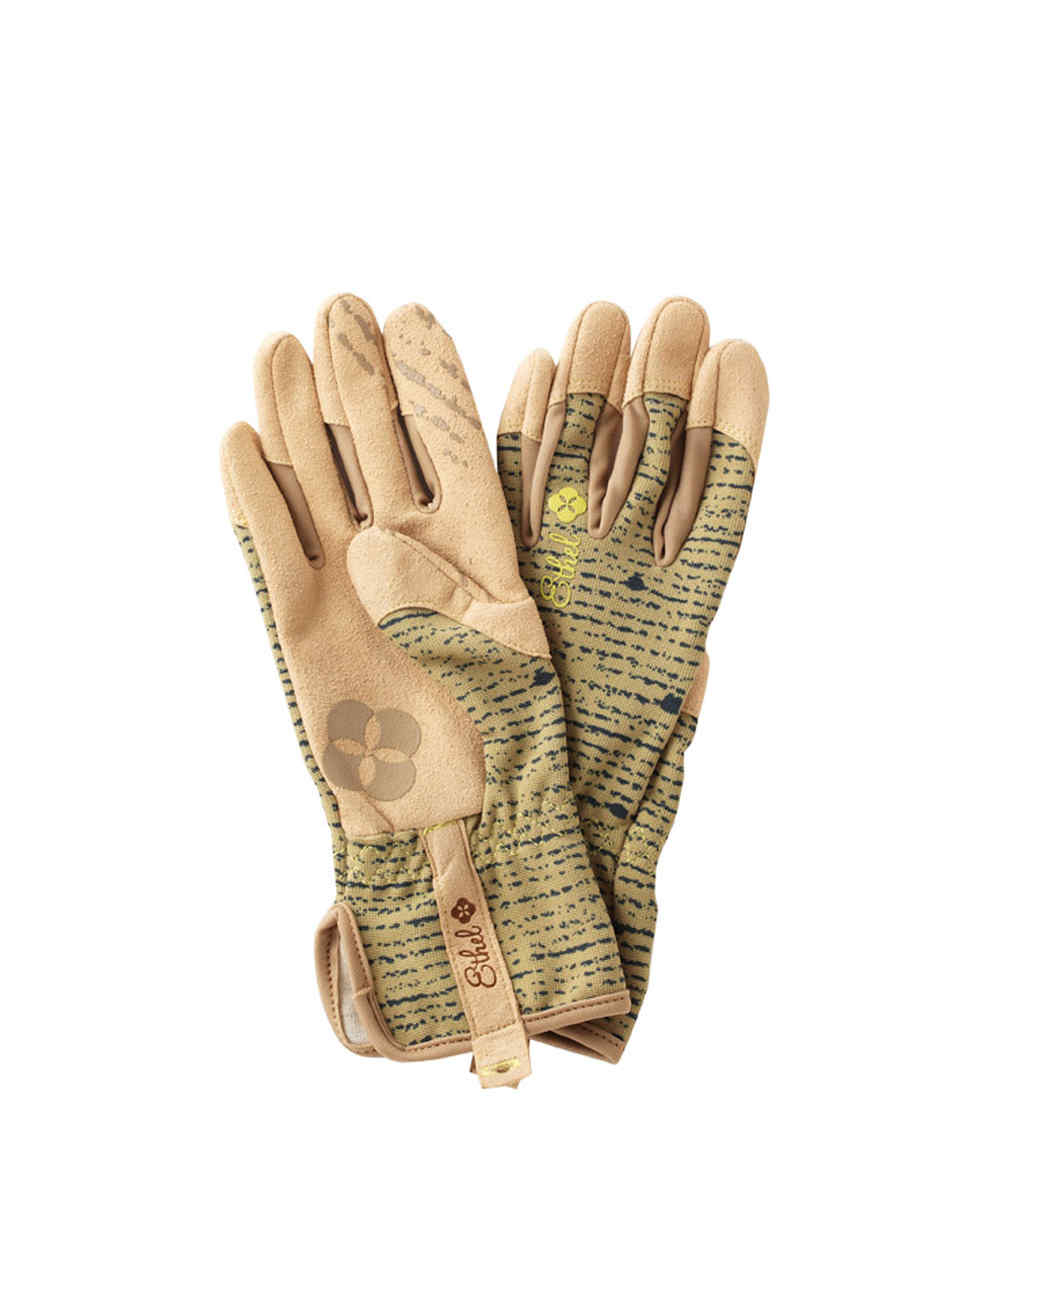 md106902_0311_patterngloves42s.jpg